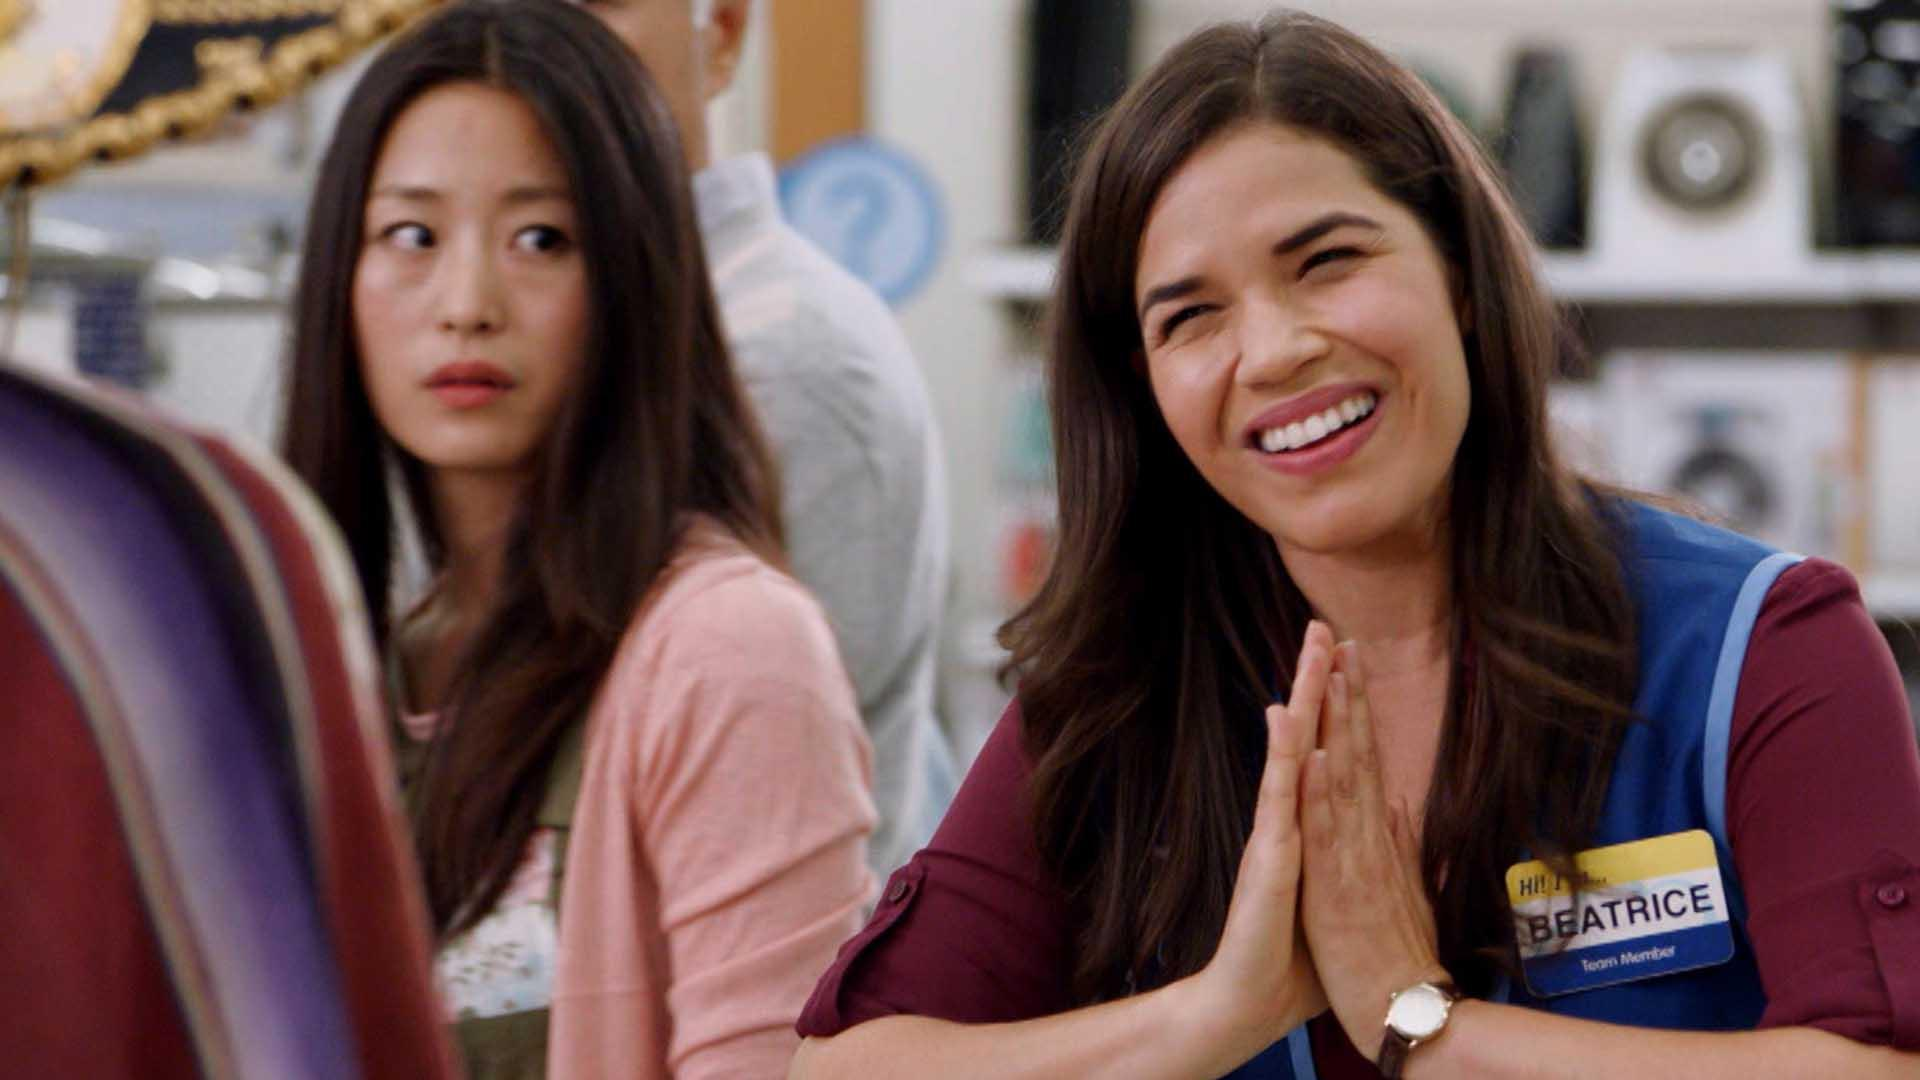 'Superstore' Review: America Ferrera NBC Comedy Proves Big Not Better